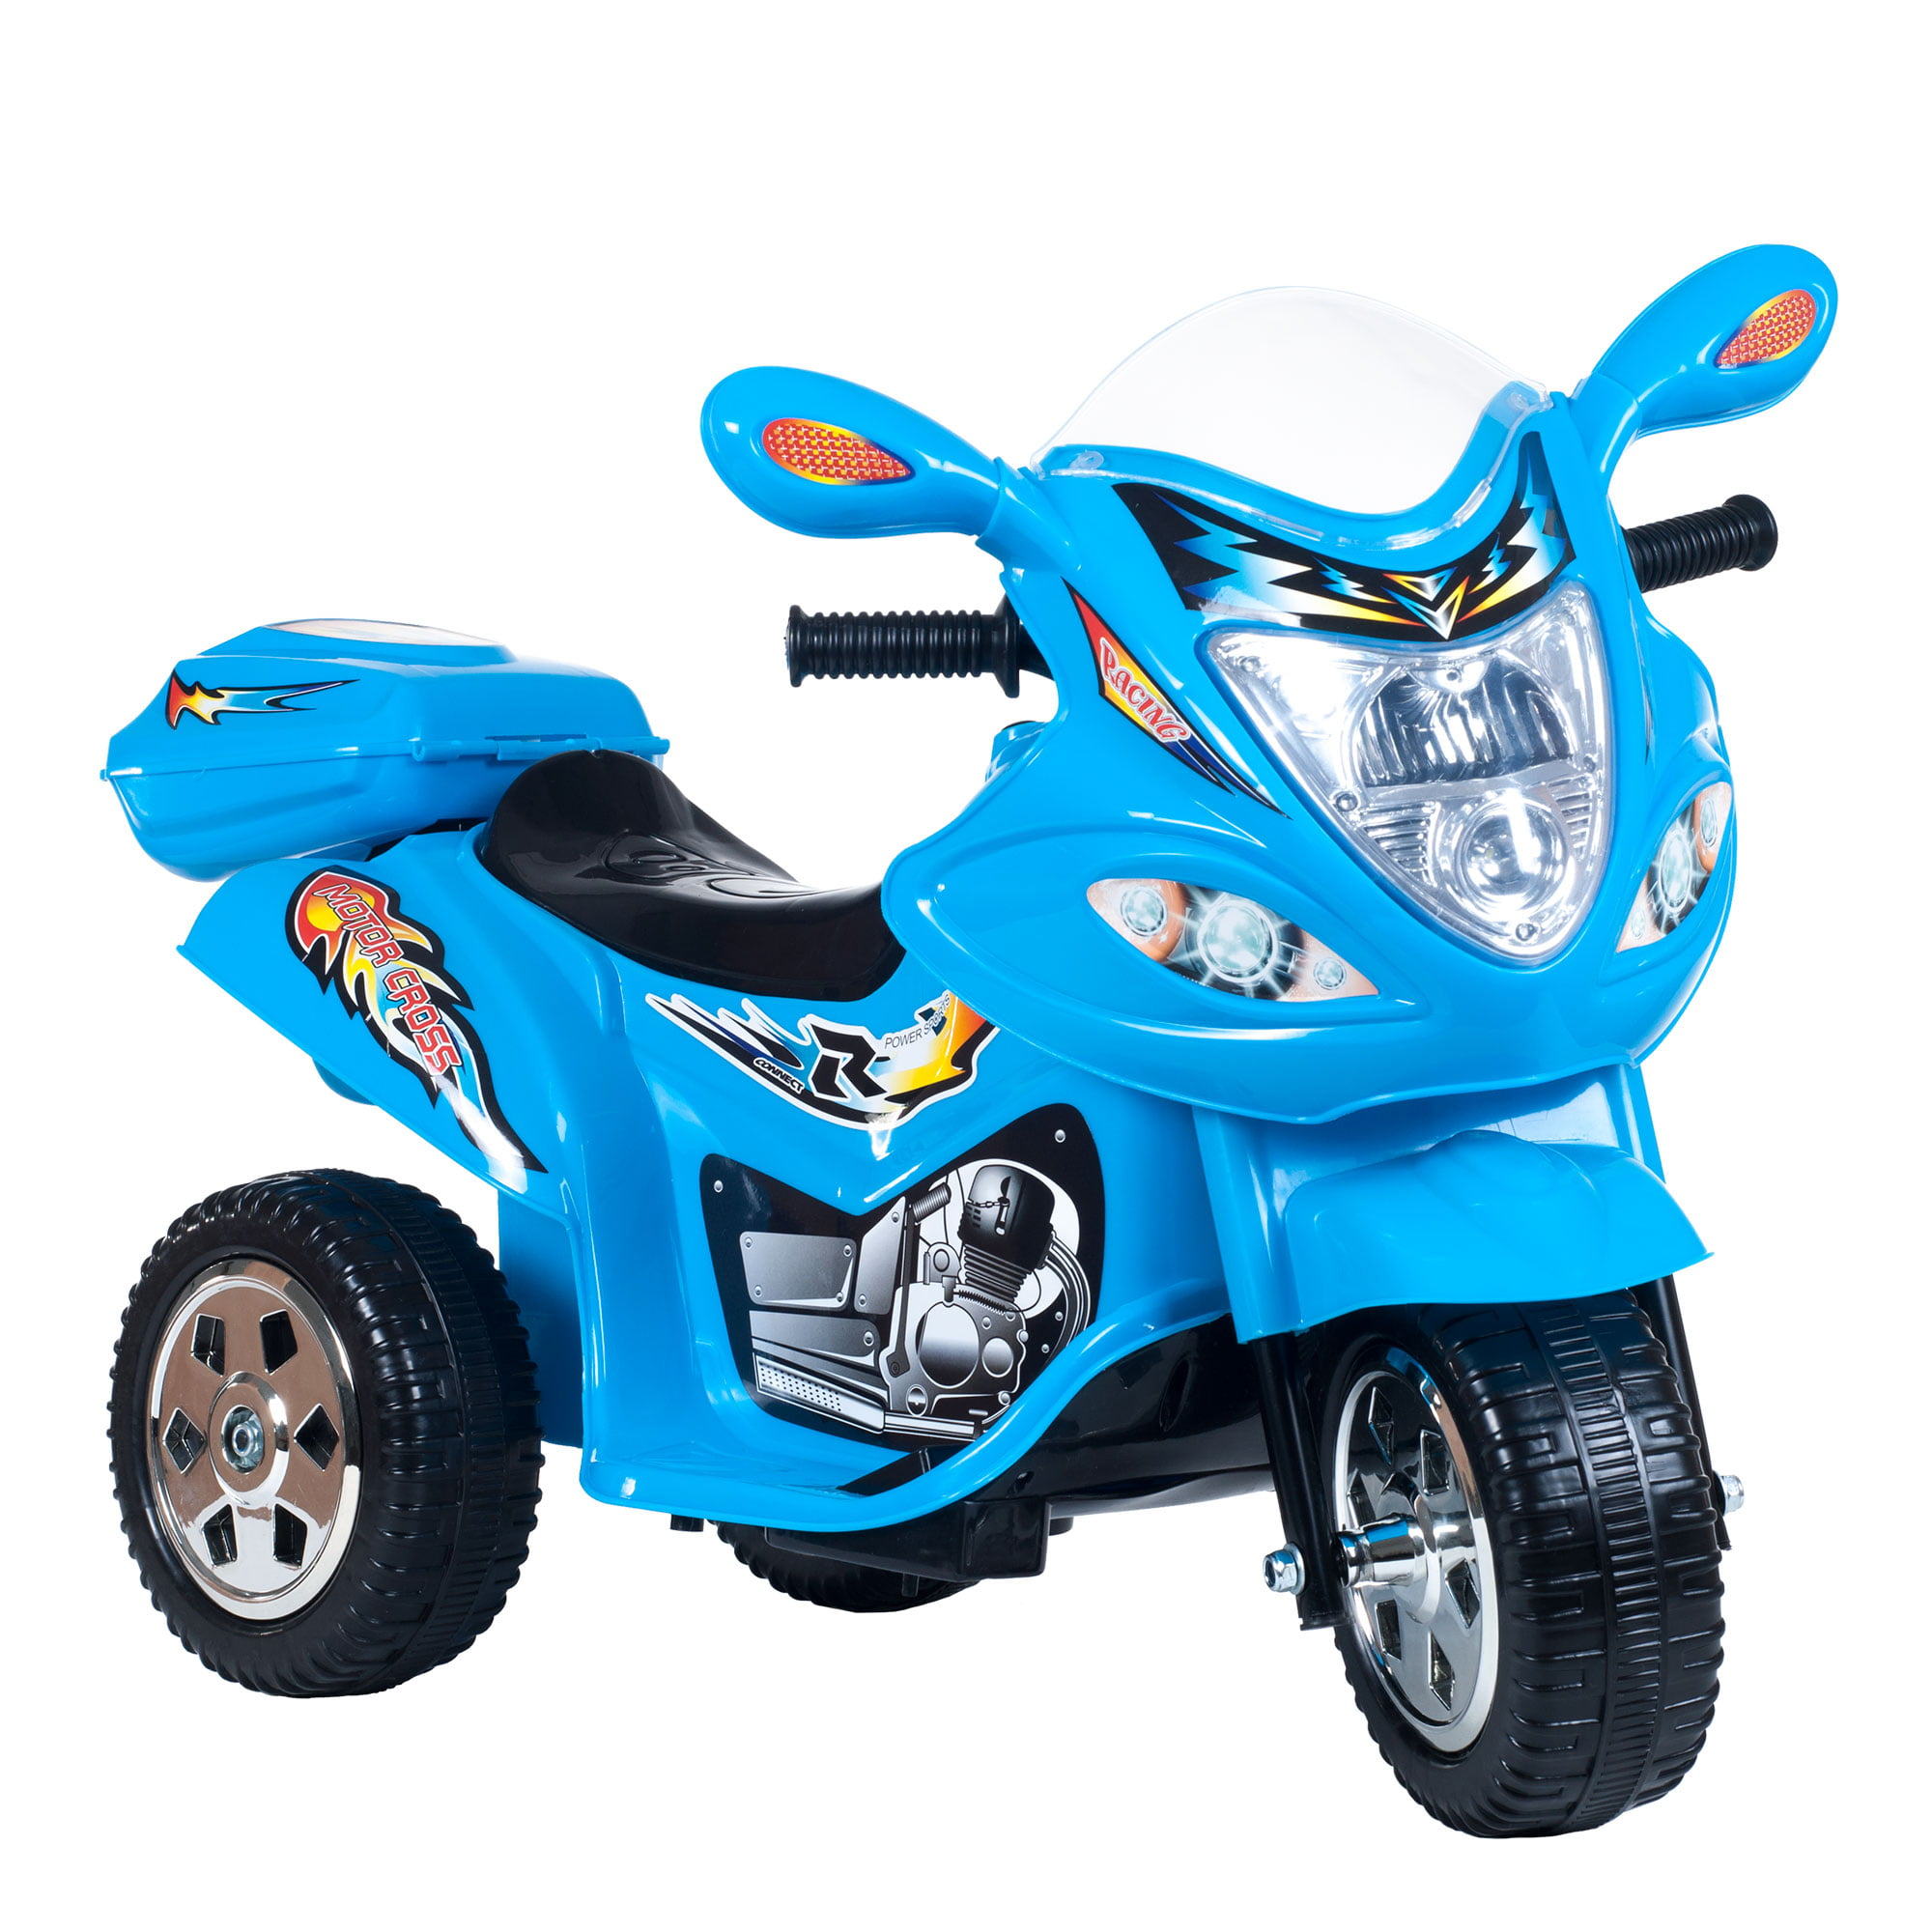 Ride on Toy, 3 Wheel Trike Motorcycle for Kids, Battery Powered Ride On Toy by Lil Rider �... by Trademark Global LLC